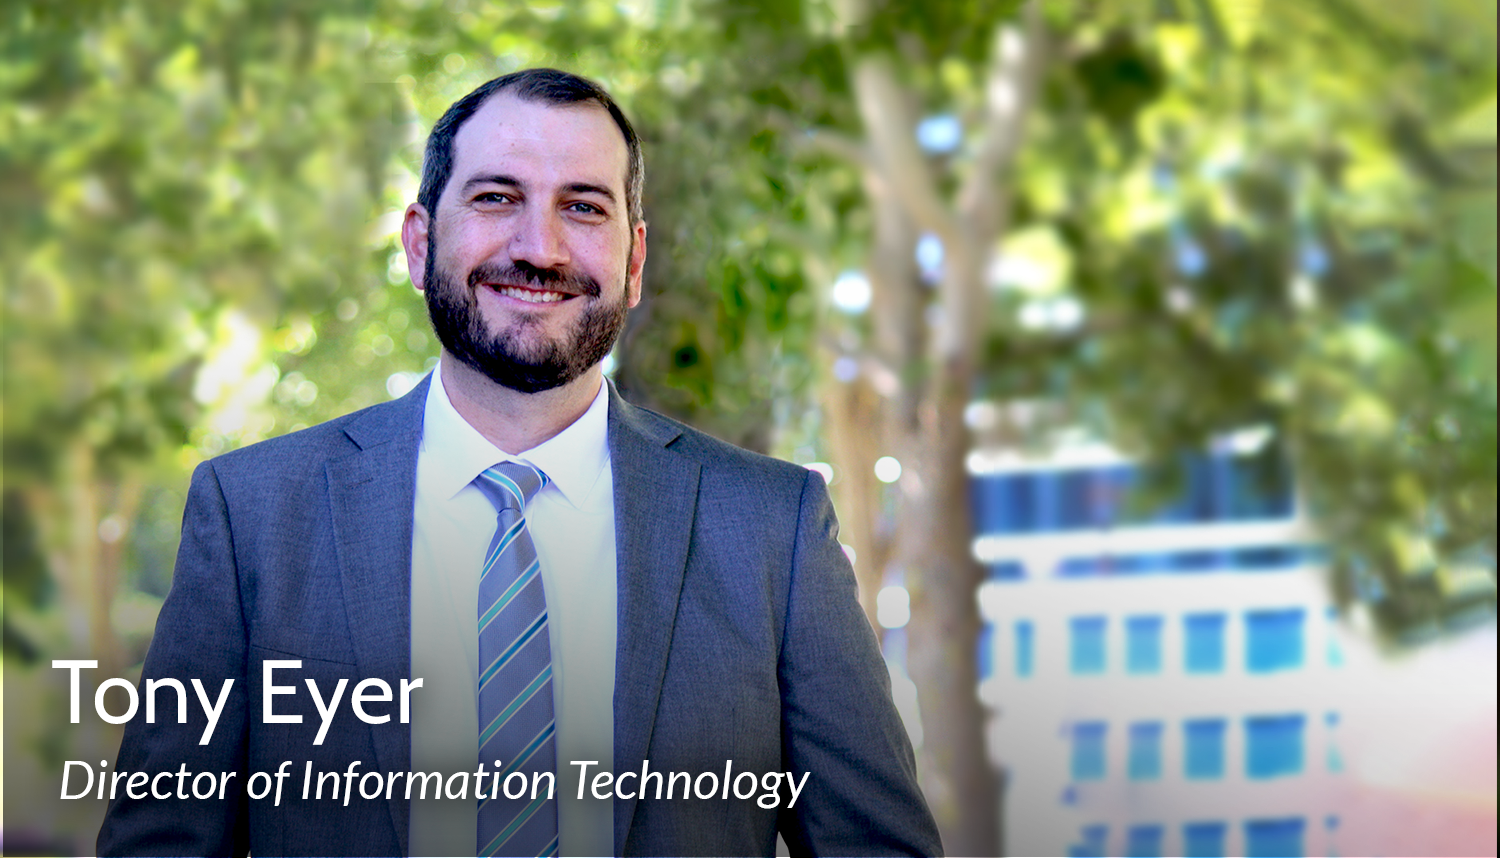 Tony Eyer, Director of Information Technology